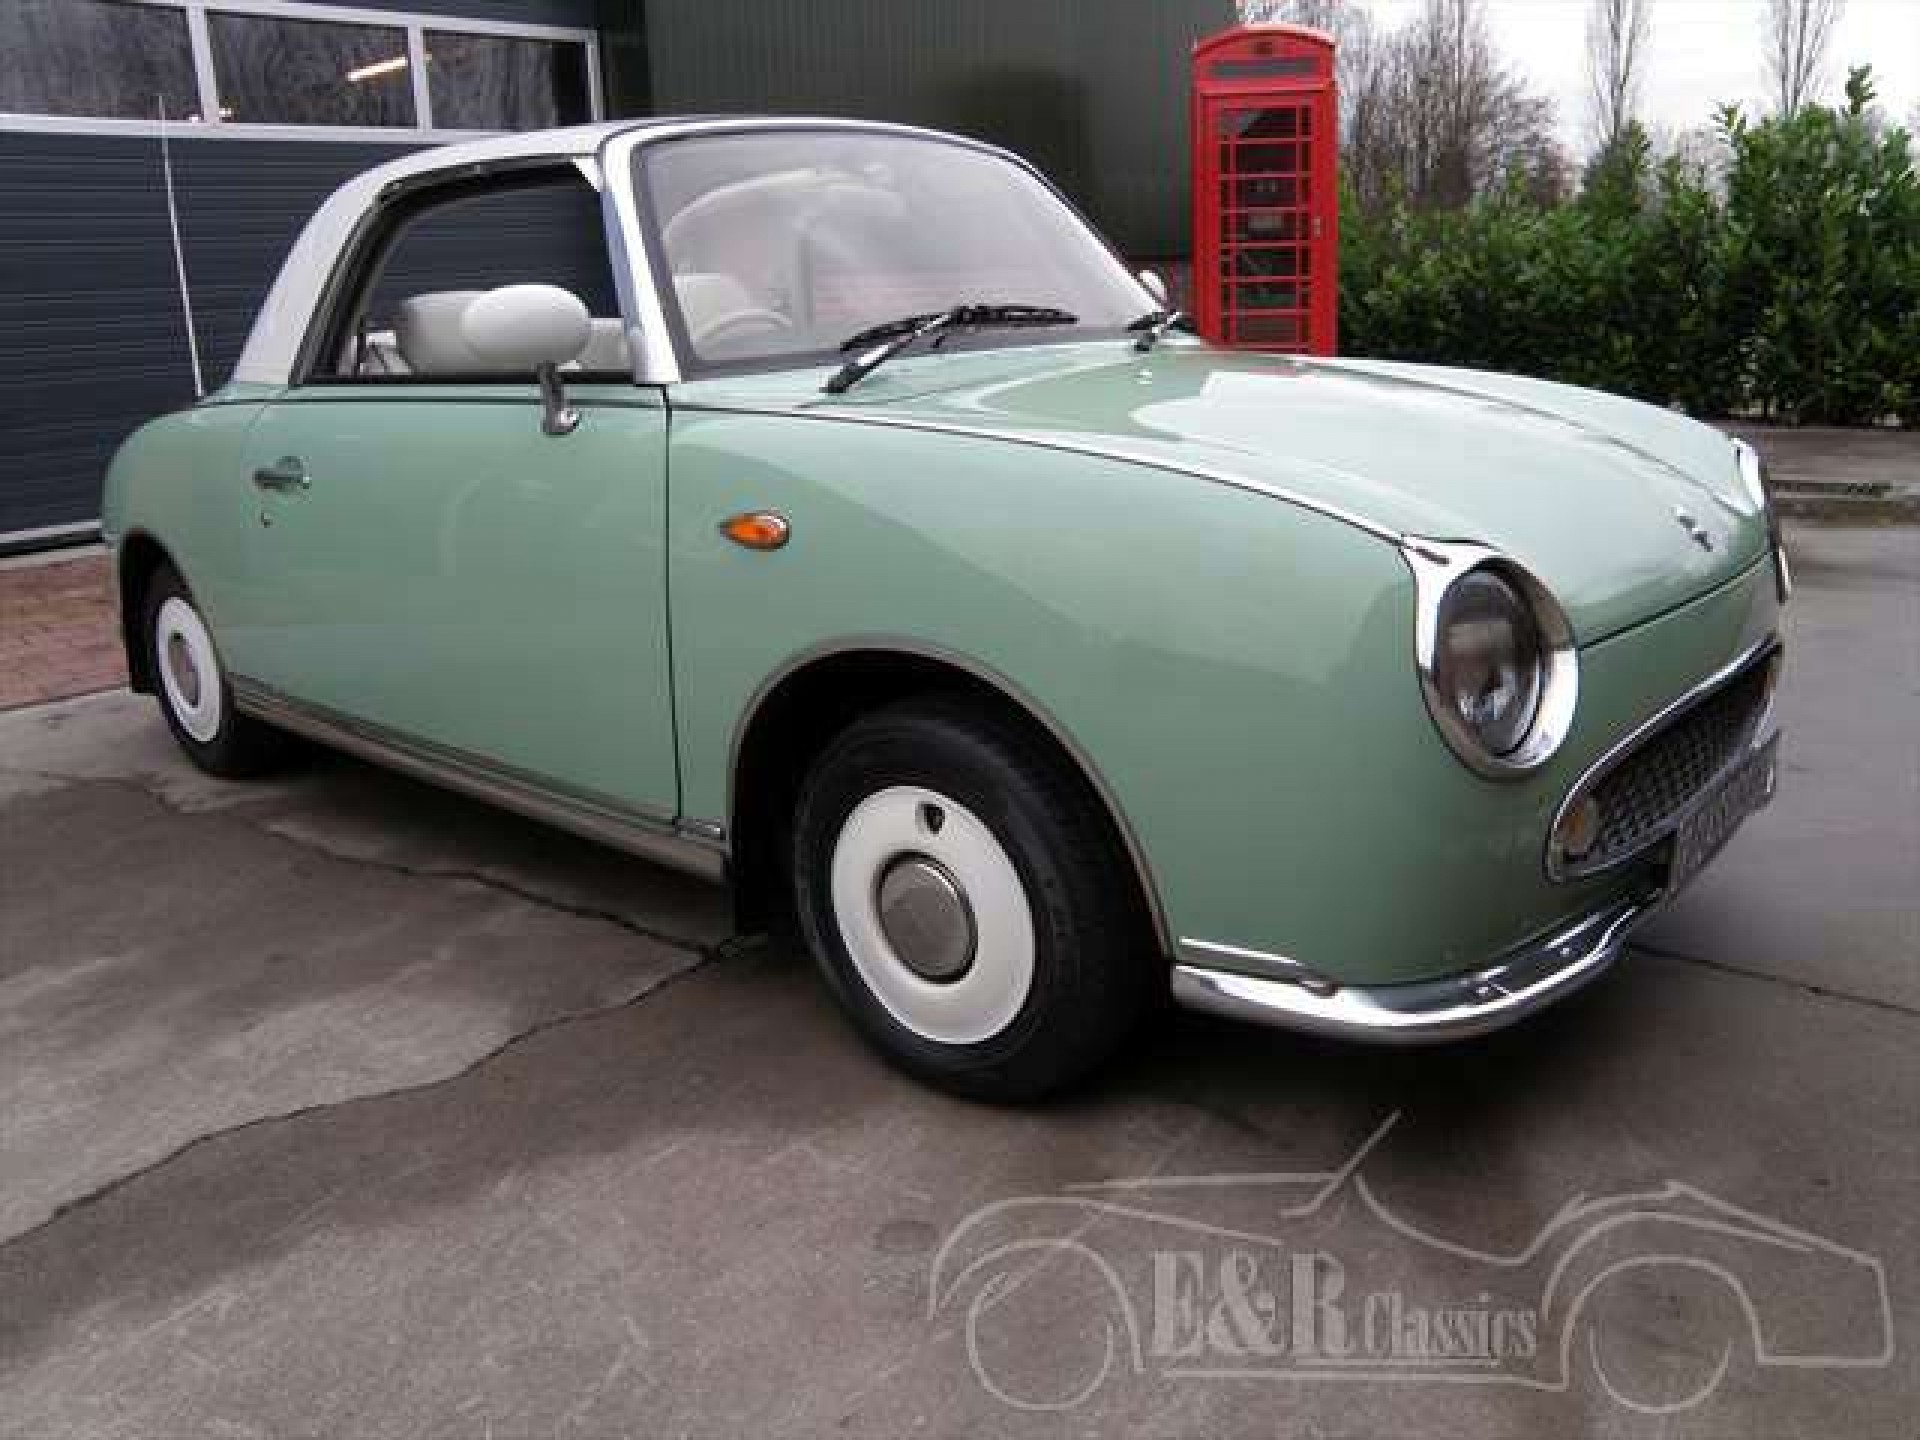 Nissan Garage Waalwijk : Nissan classic cars nissan oldtimers for sale at e r classic cars